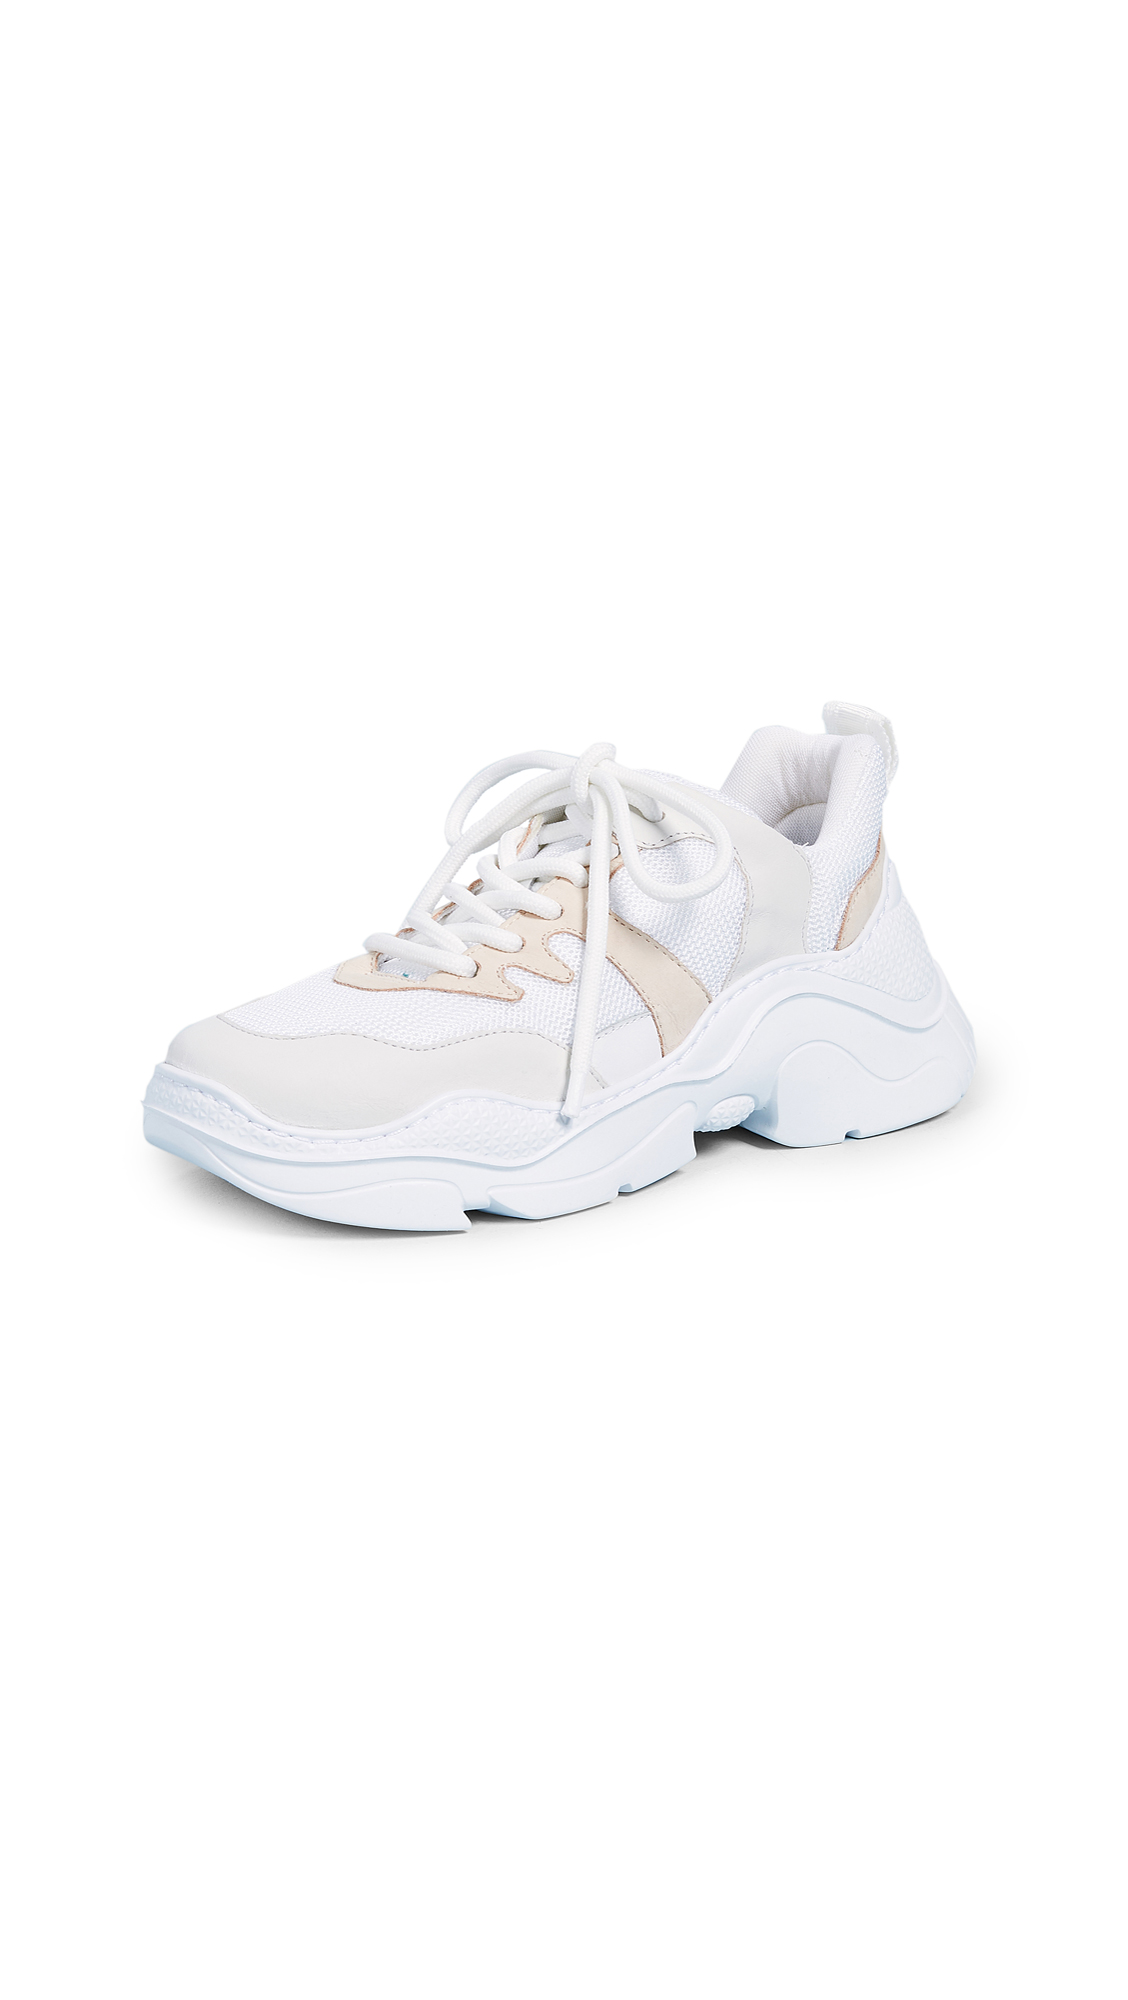 Schutz Lace Up Sneakers - White/Pearl